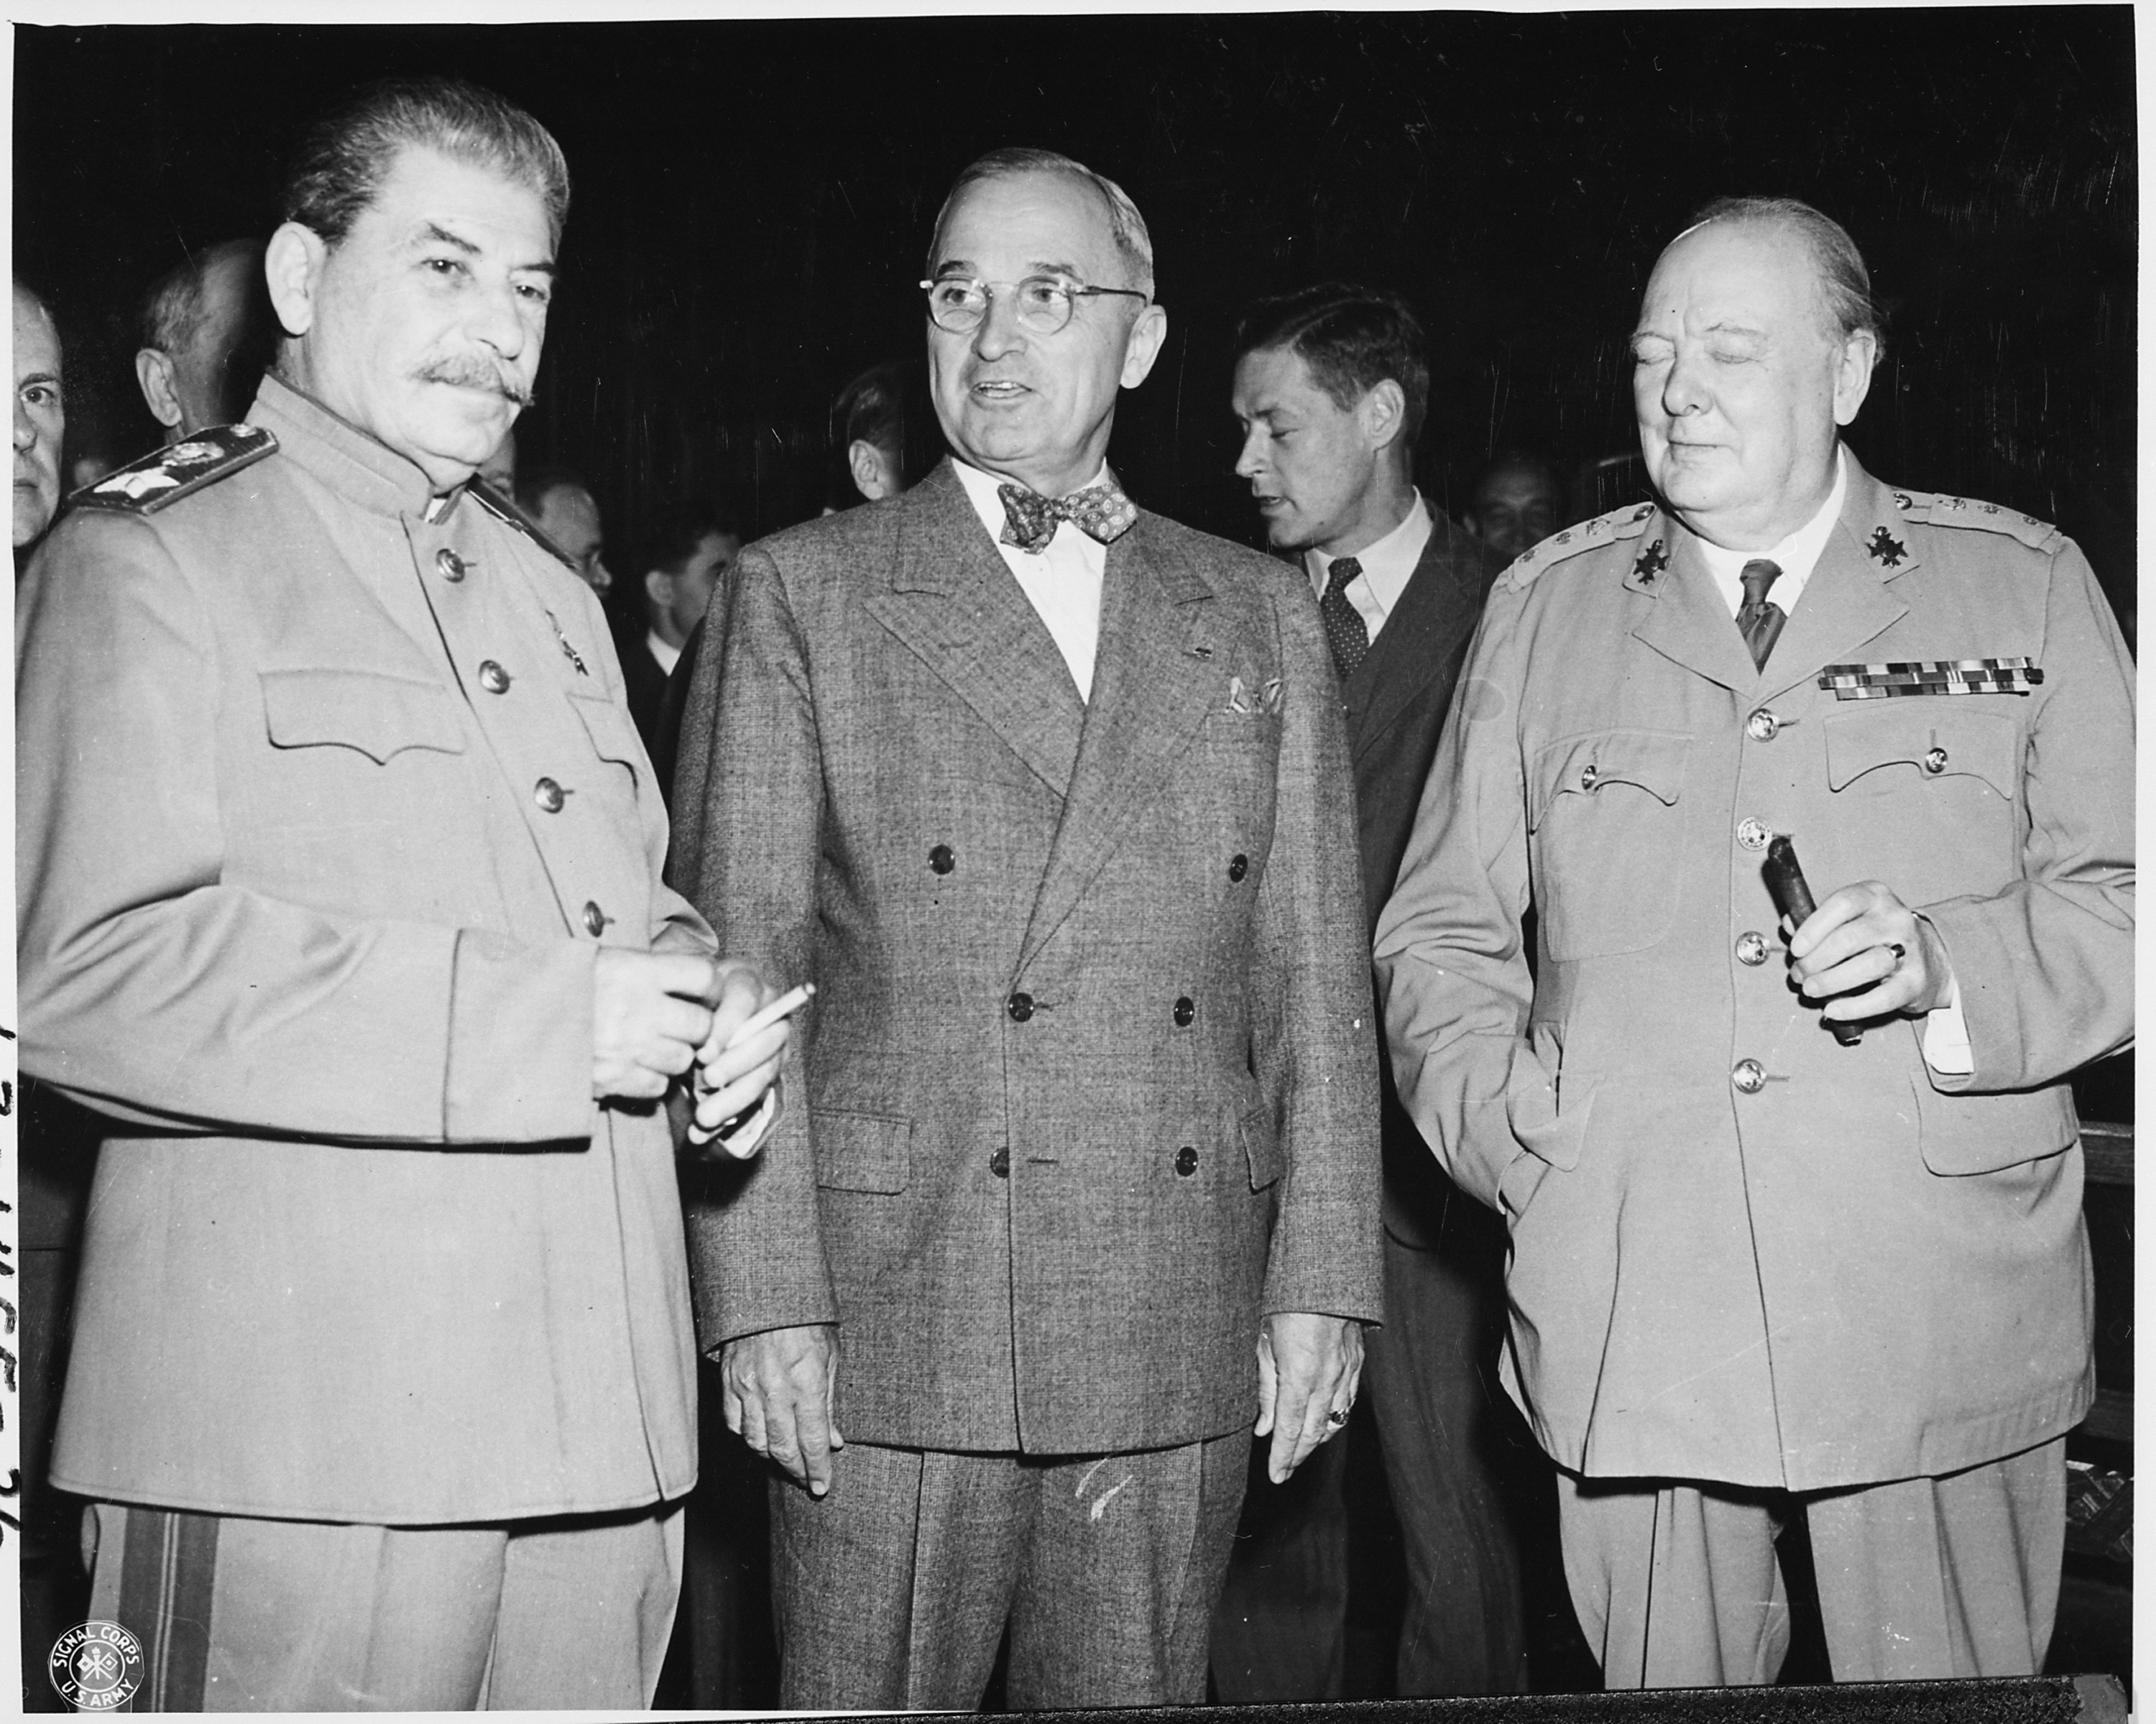 truman and stalin eats and west So truman and his secretary of state told stalin that if he wanted reparations,   began an era in which the bomb was inextricably tied to east-west relations.